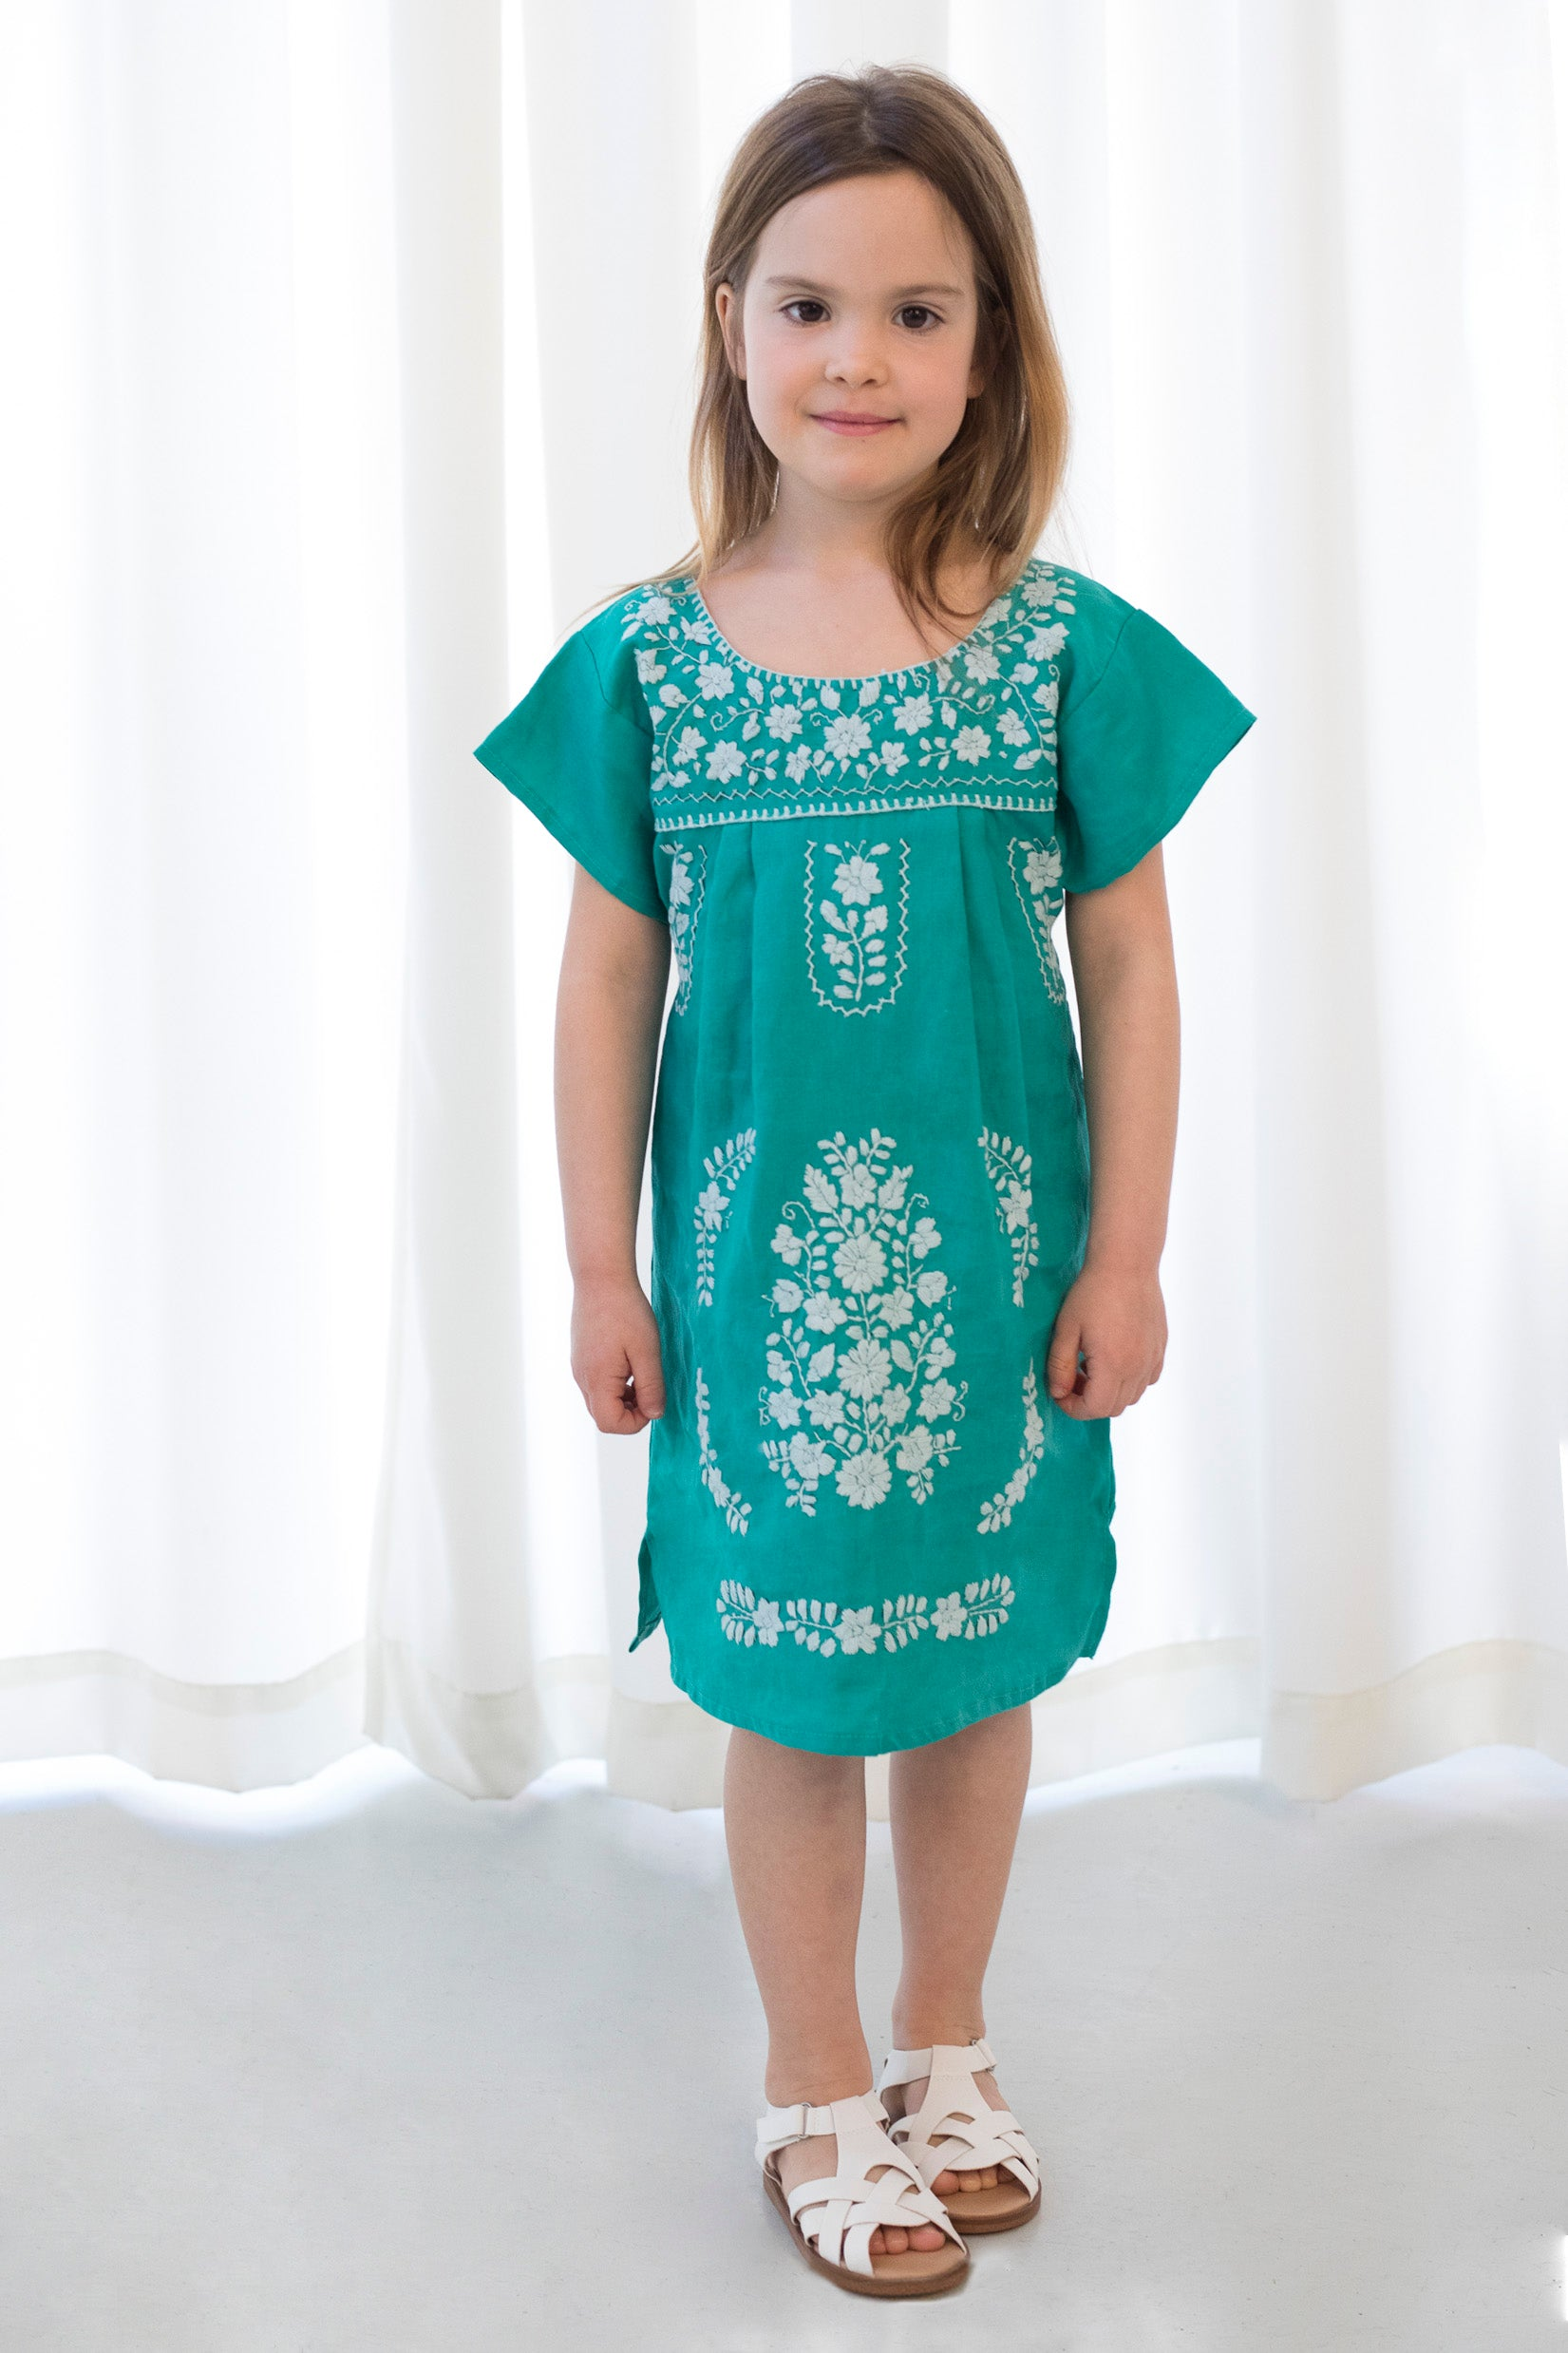 THE GIRLS JADE DRESS